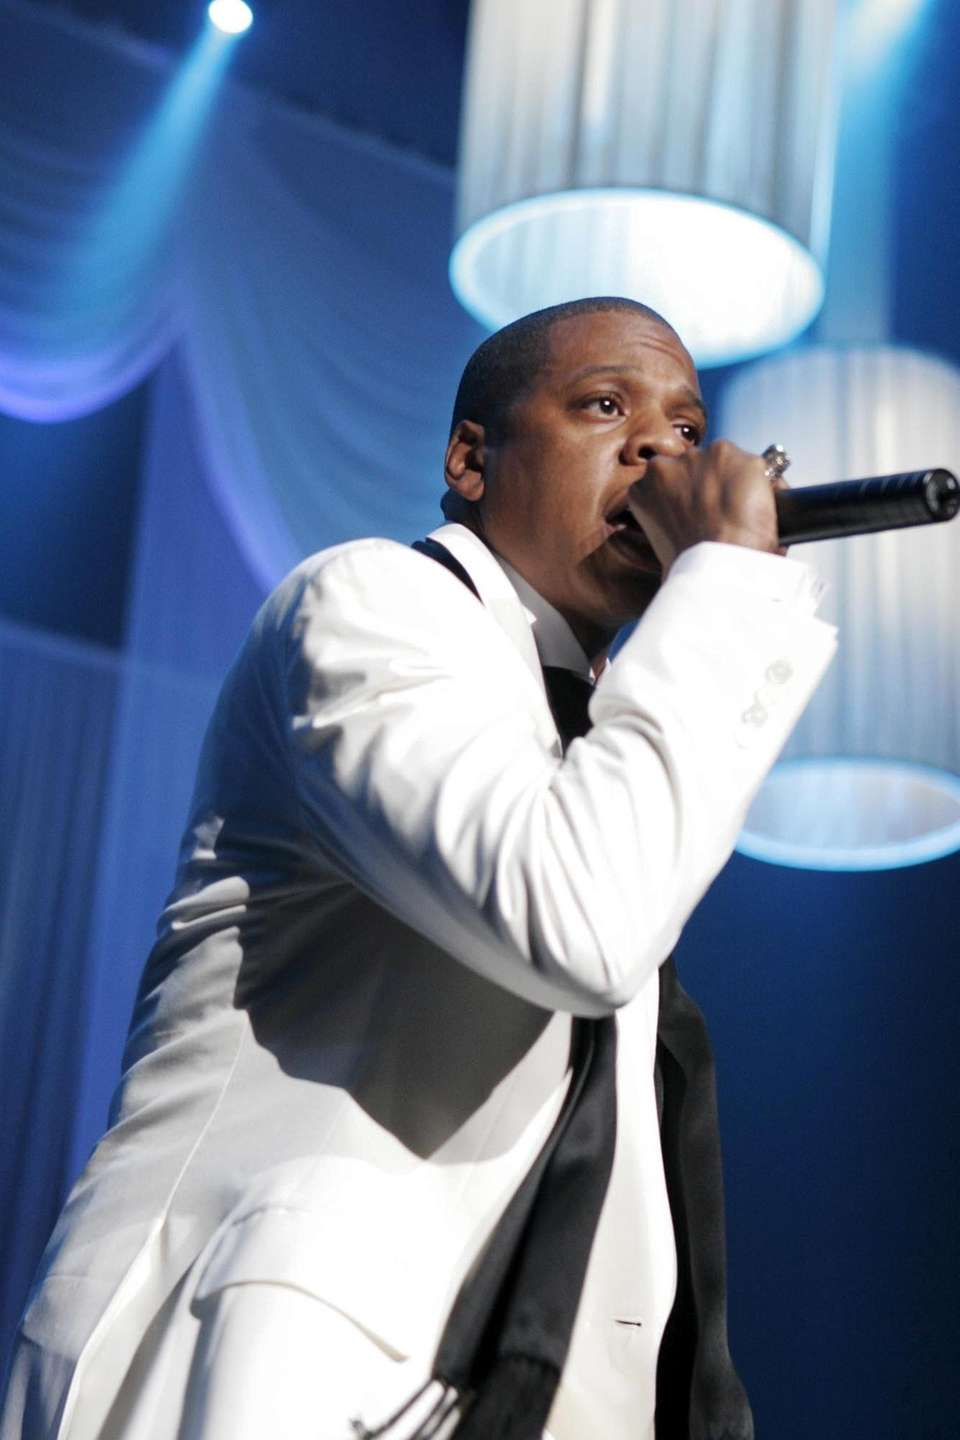 Rapper Jay Z performs at New York's Radio